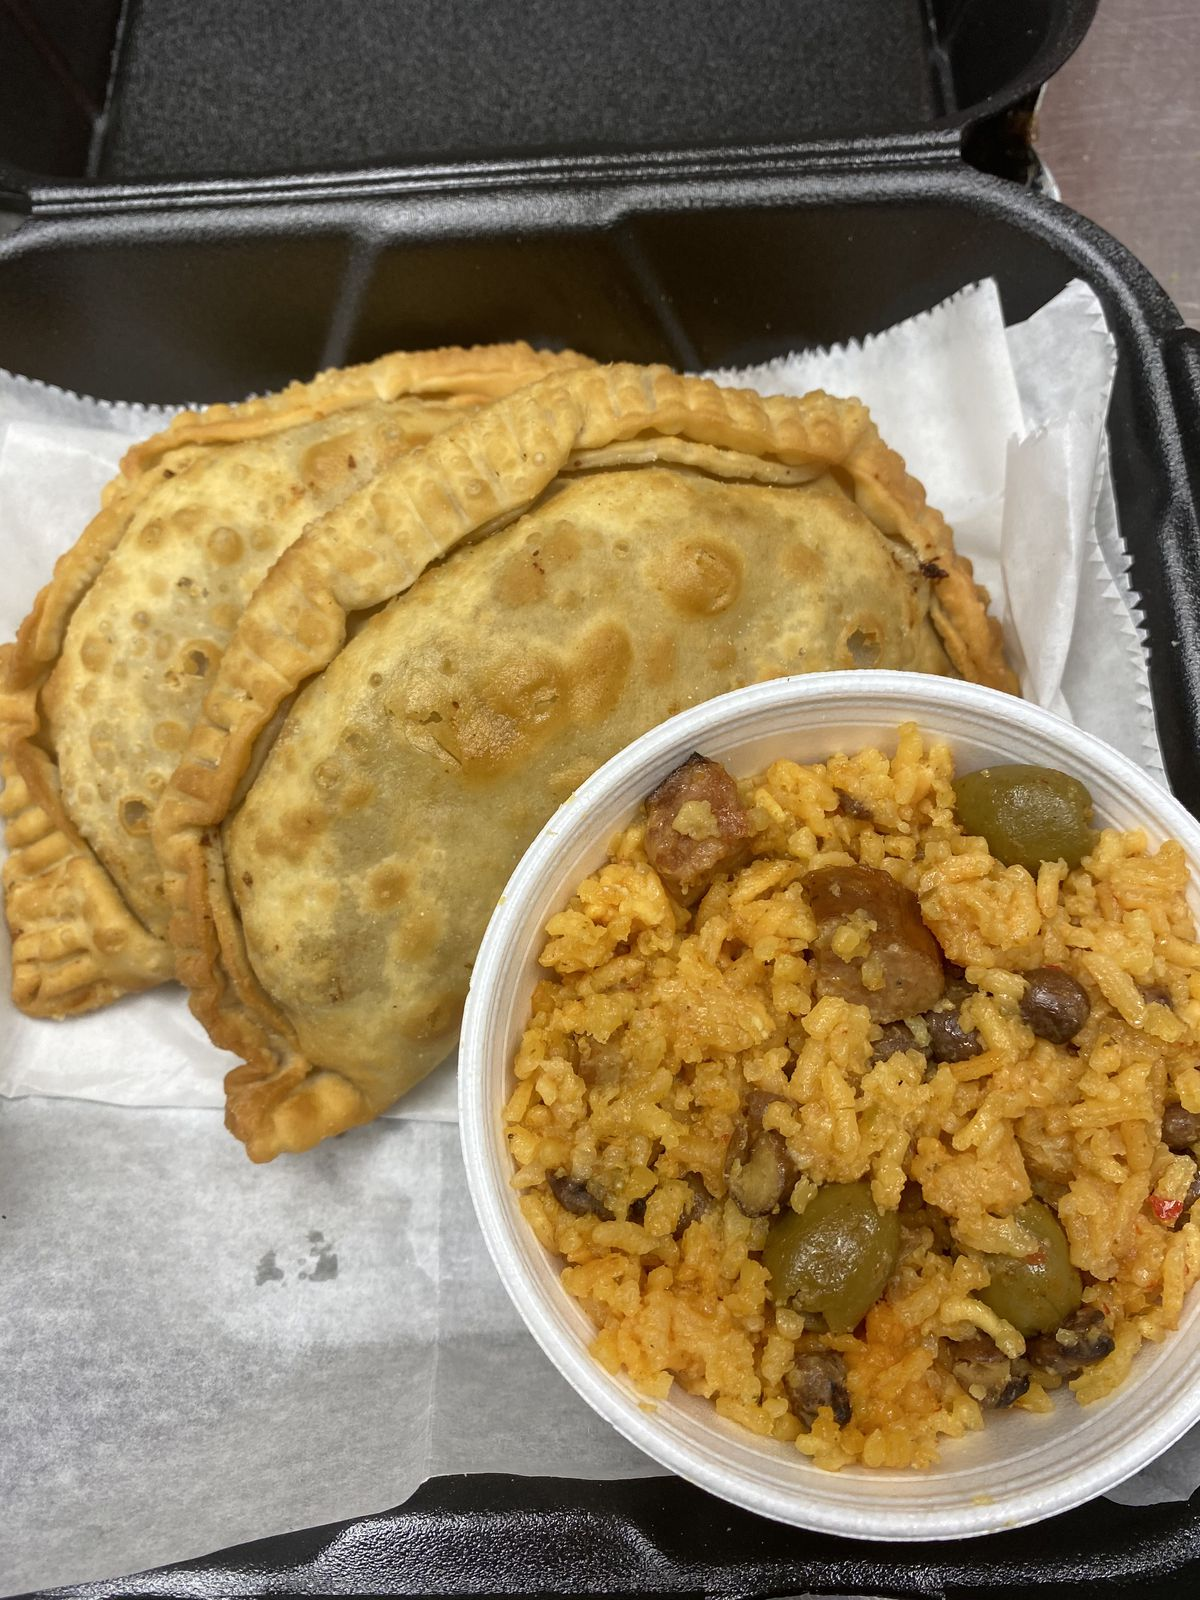 Two empanadas and a cup of orange rice in a styrofoam cup.